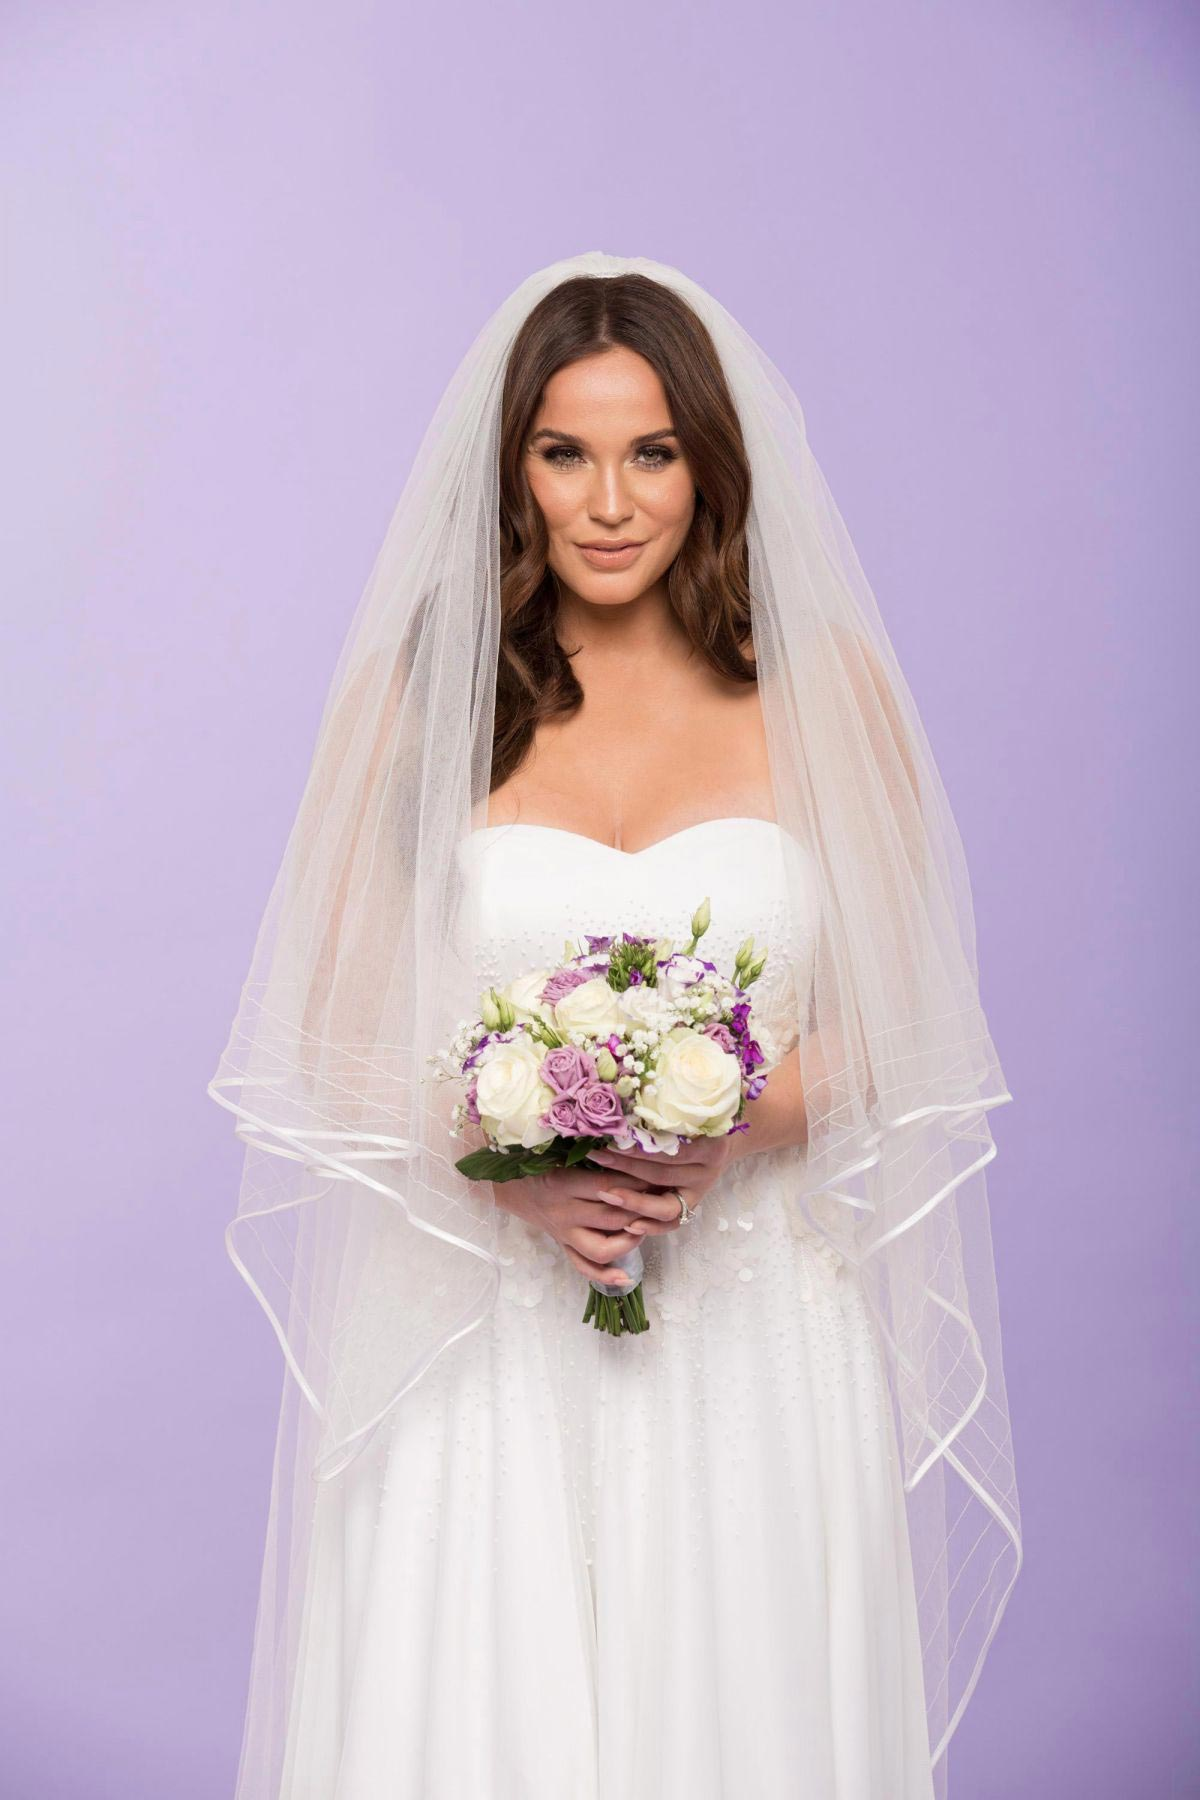 Vicky Pattison on the Set of a Wedding Theme Photoshoot, November 2018 1